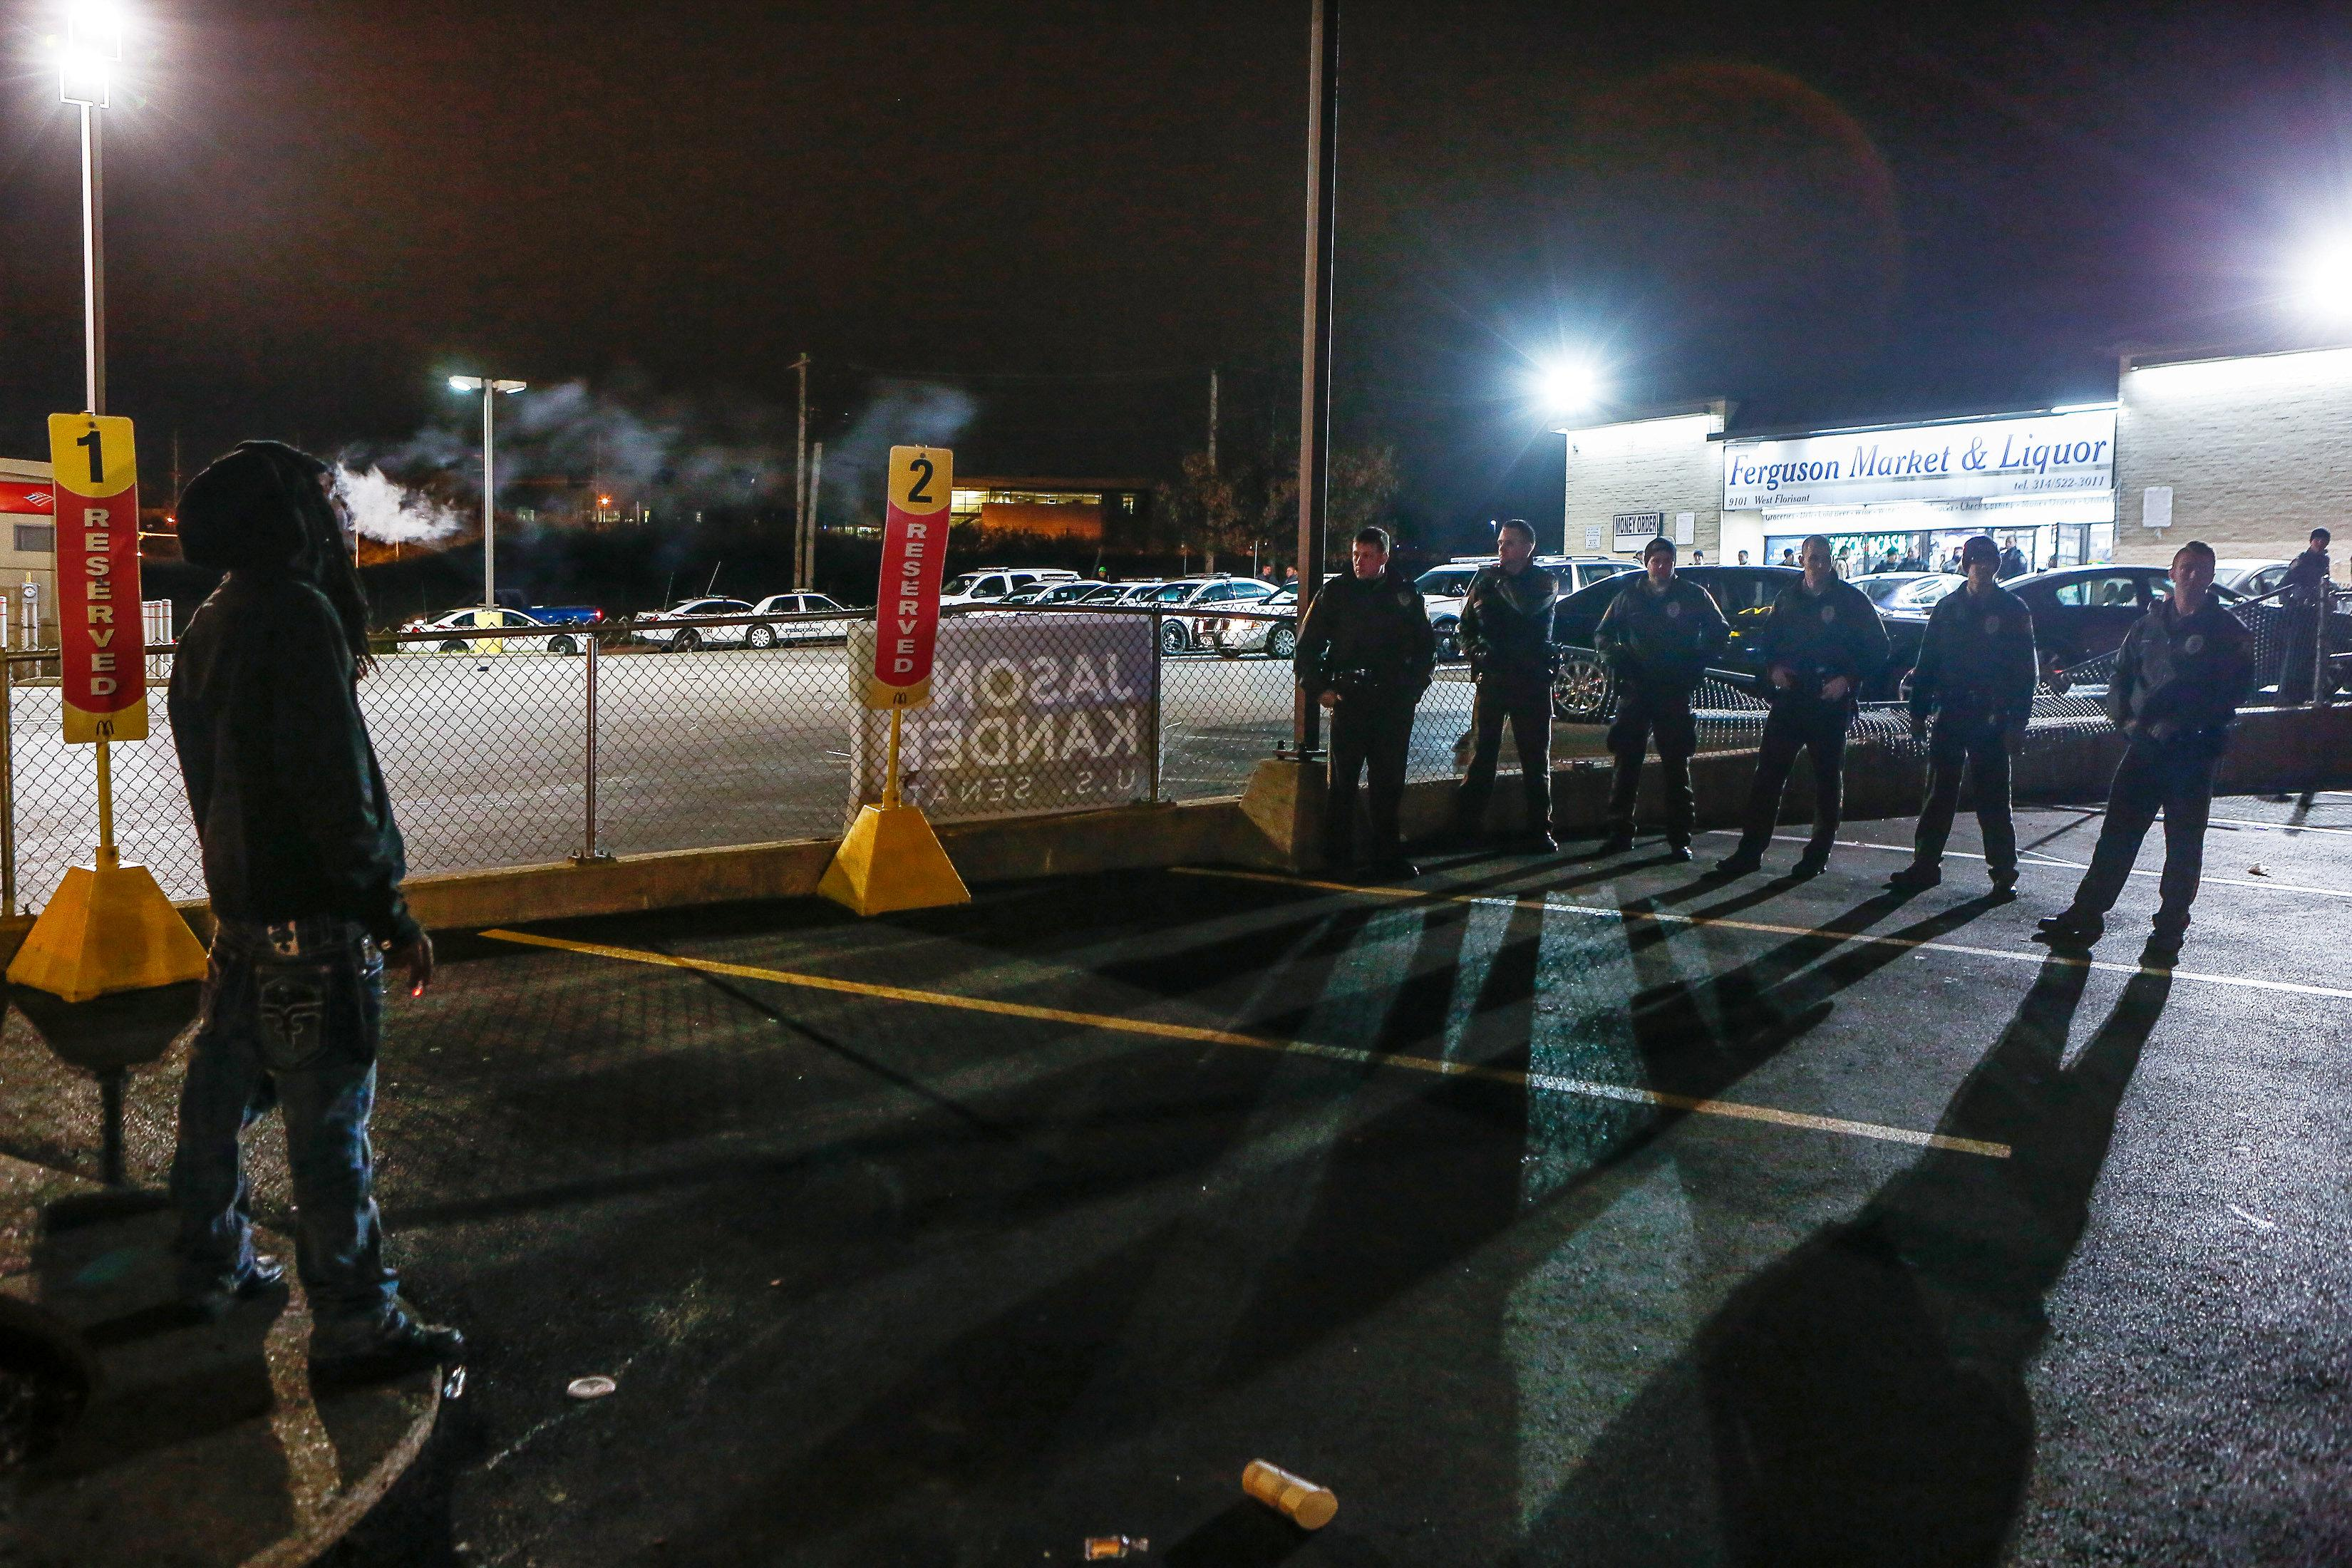 Video poses new questions about 2014 Ferguson police shooting - Reuters